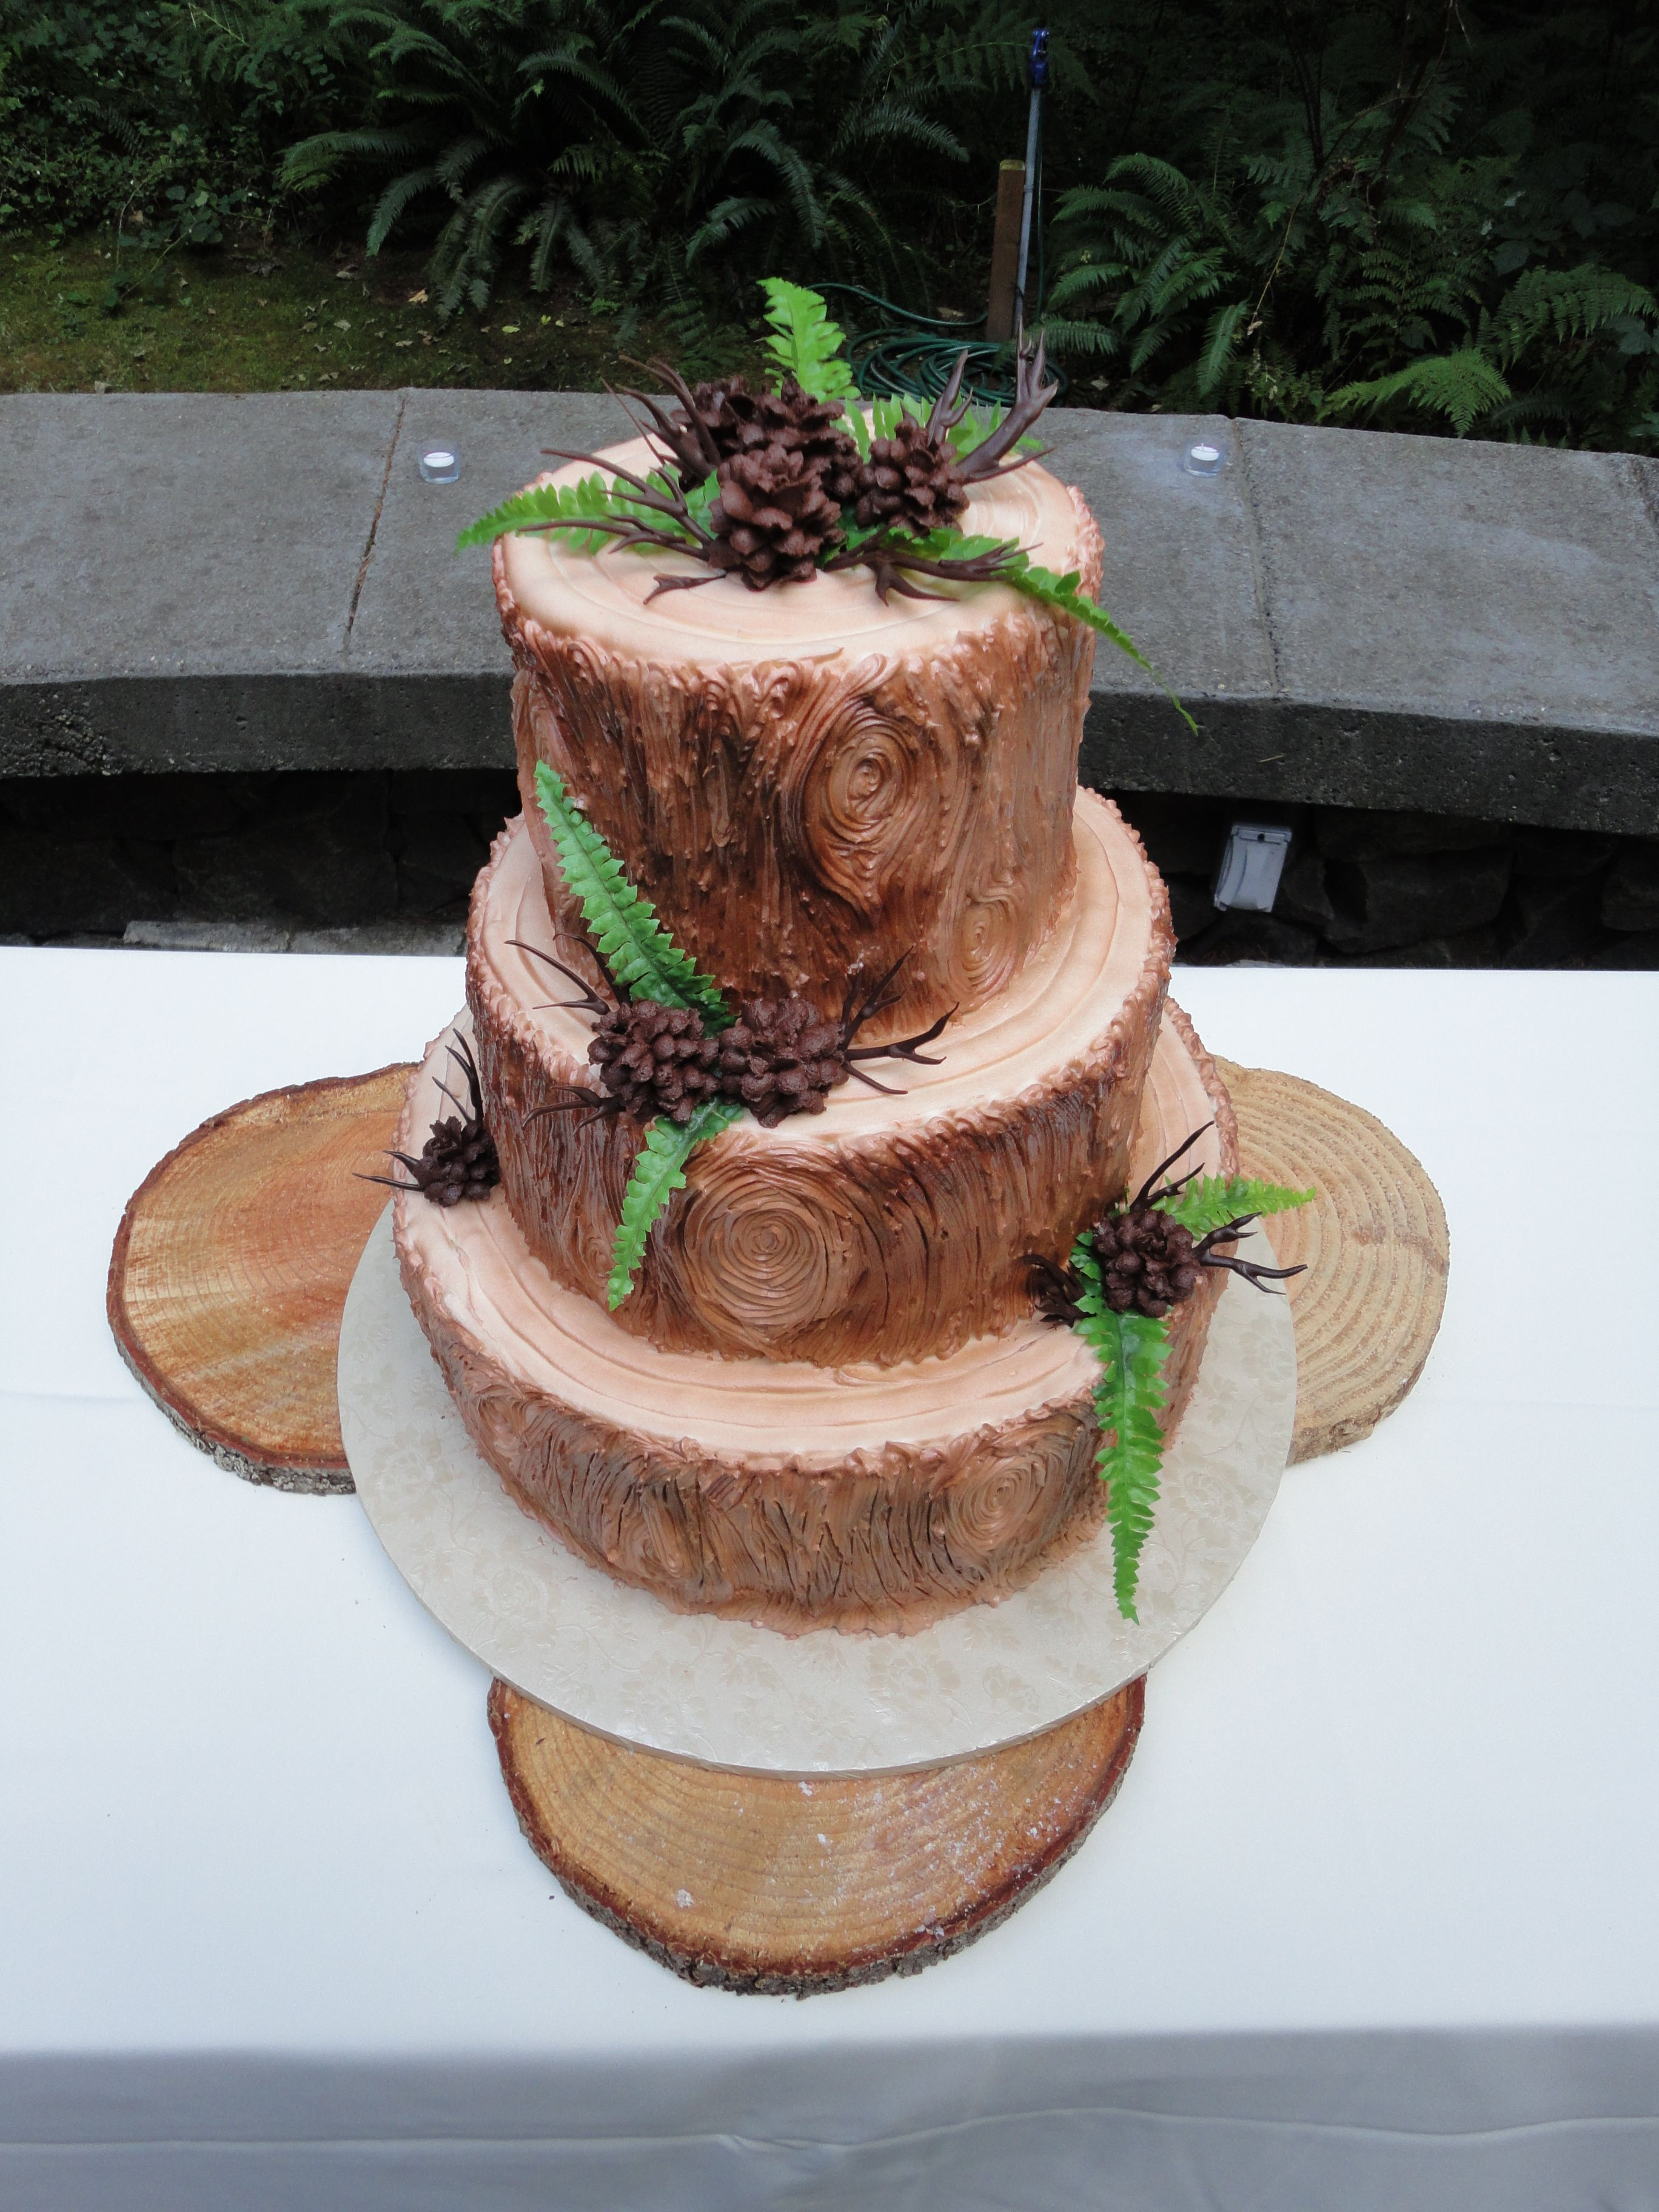 Rustic Wedding Cake With Ferns Pinecones And Sticks Themed Wedding Cakes Wood Wedding Cakes Wedding Cake Rustic